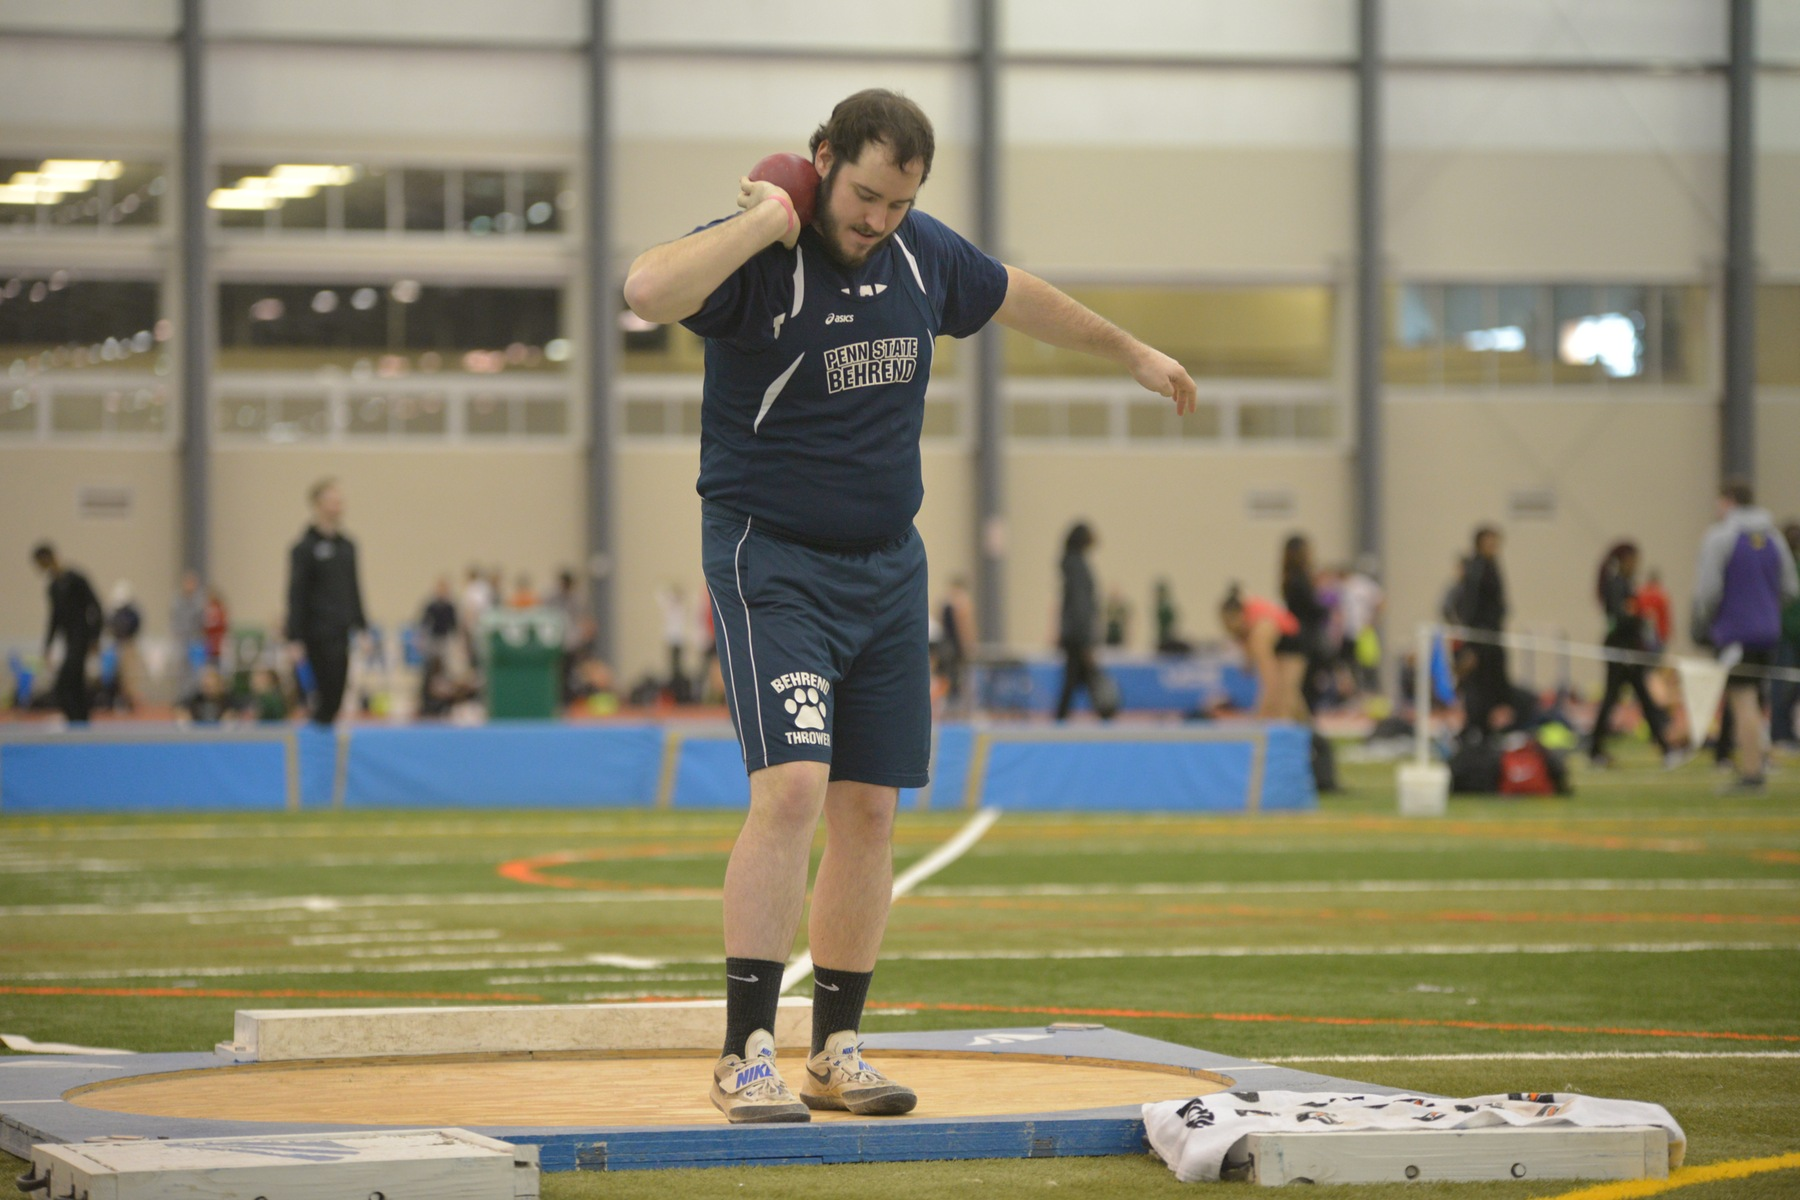 Lions Take Home First in 13 Events at Behrend Invitational